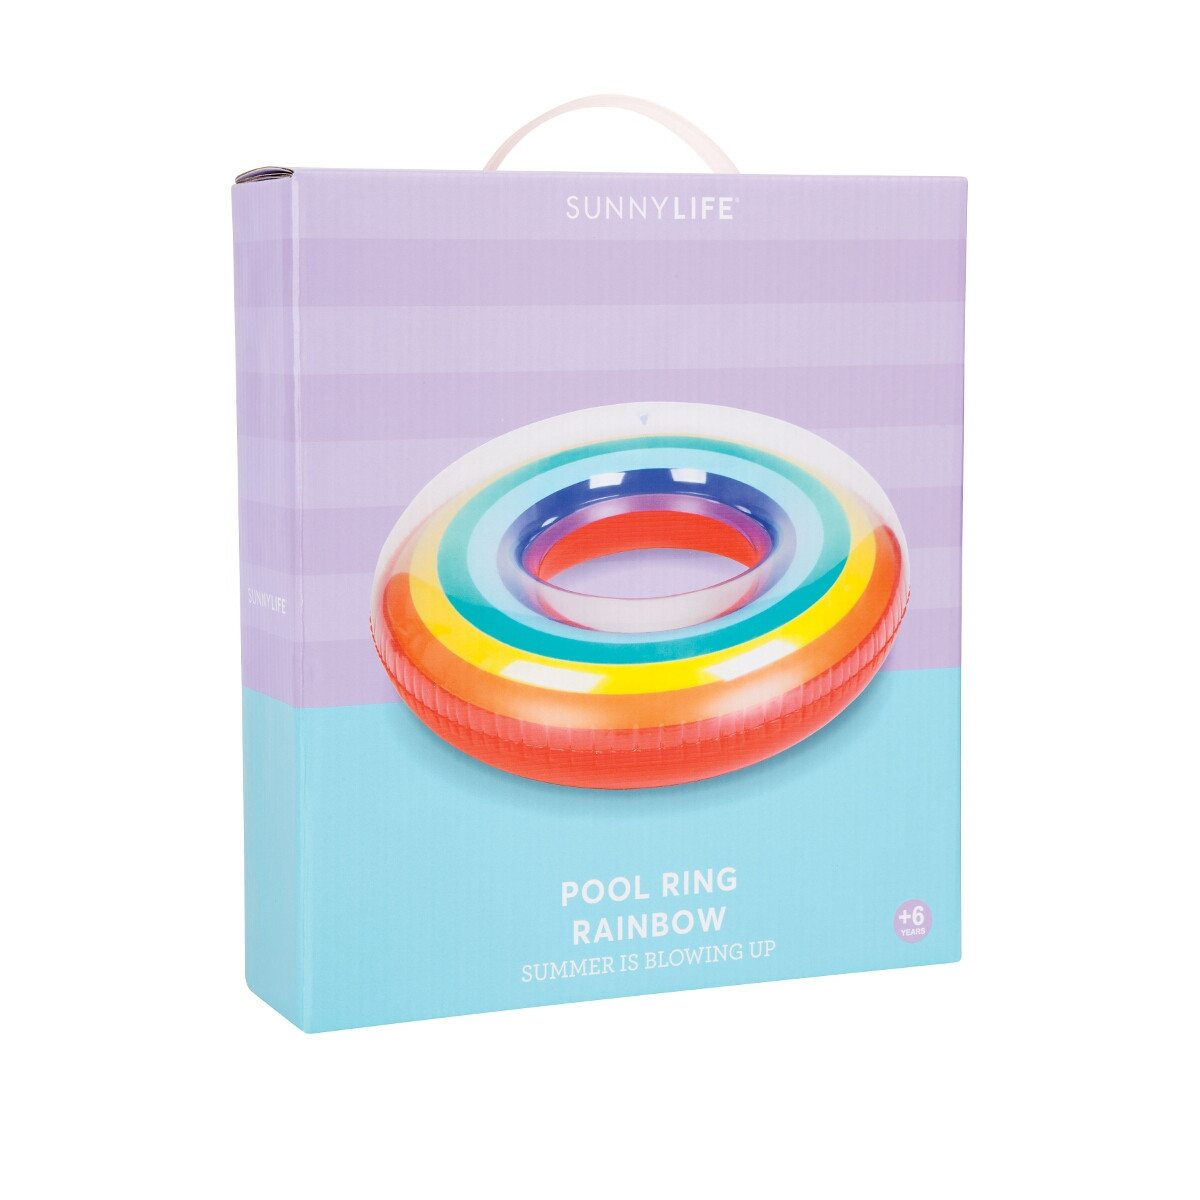 Pool Ring Rainbow - Box